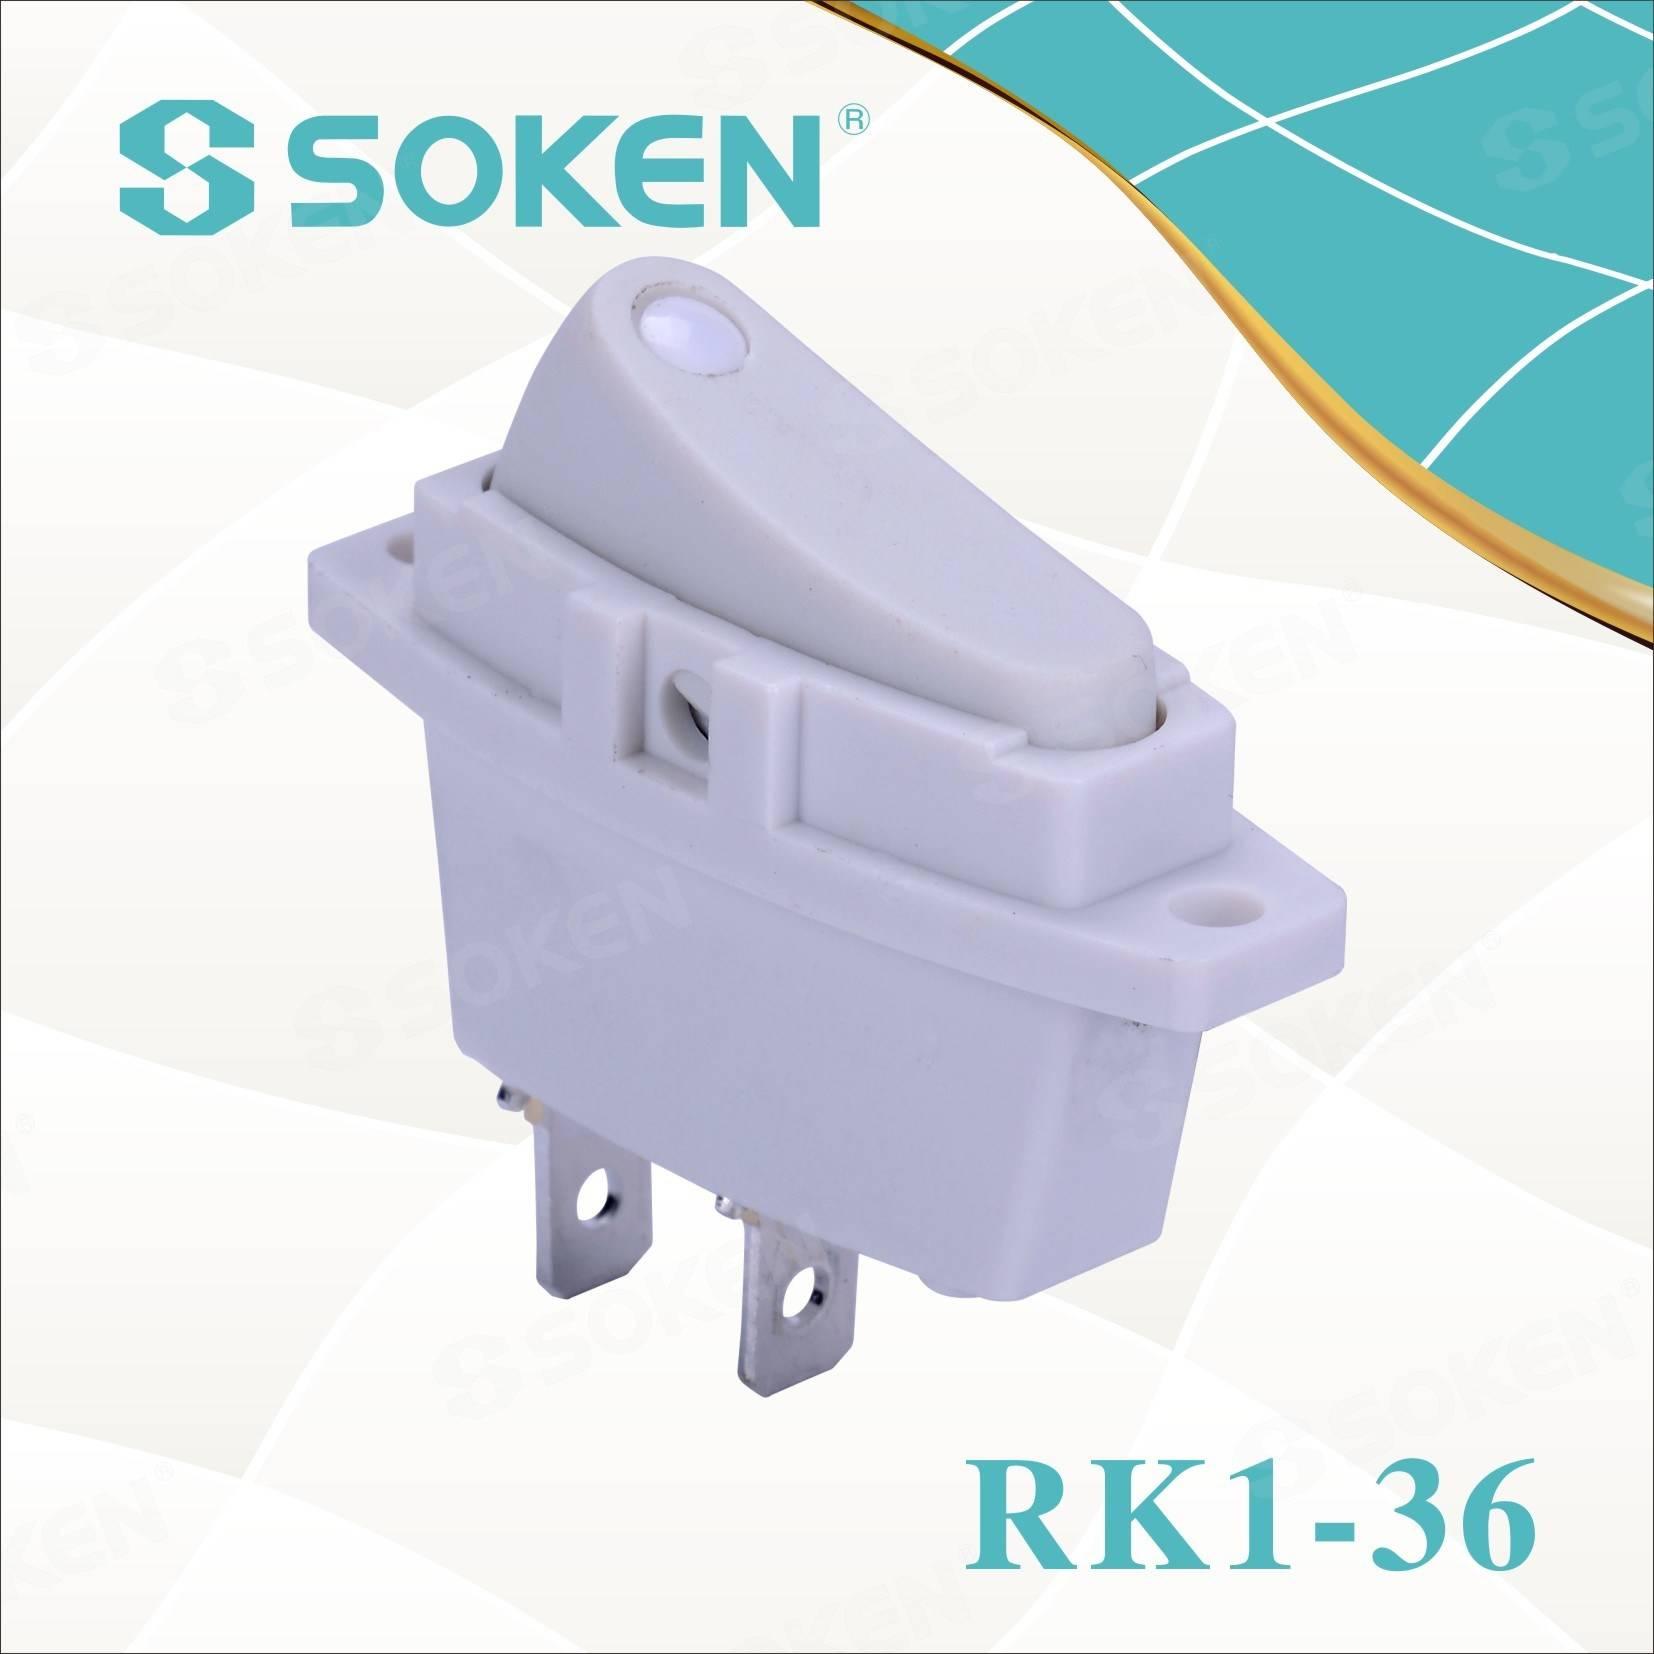 off Rocker Switch Söke'nin Rk1-36 1X1